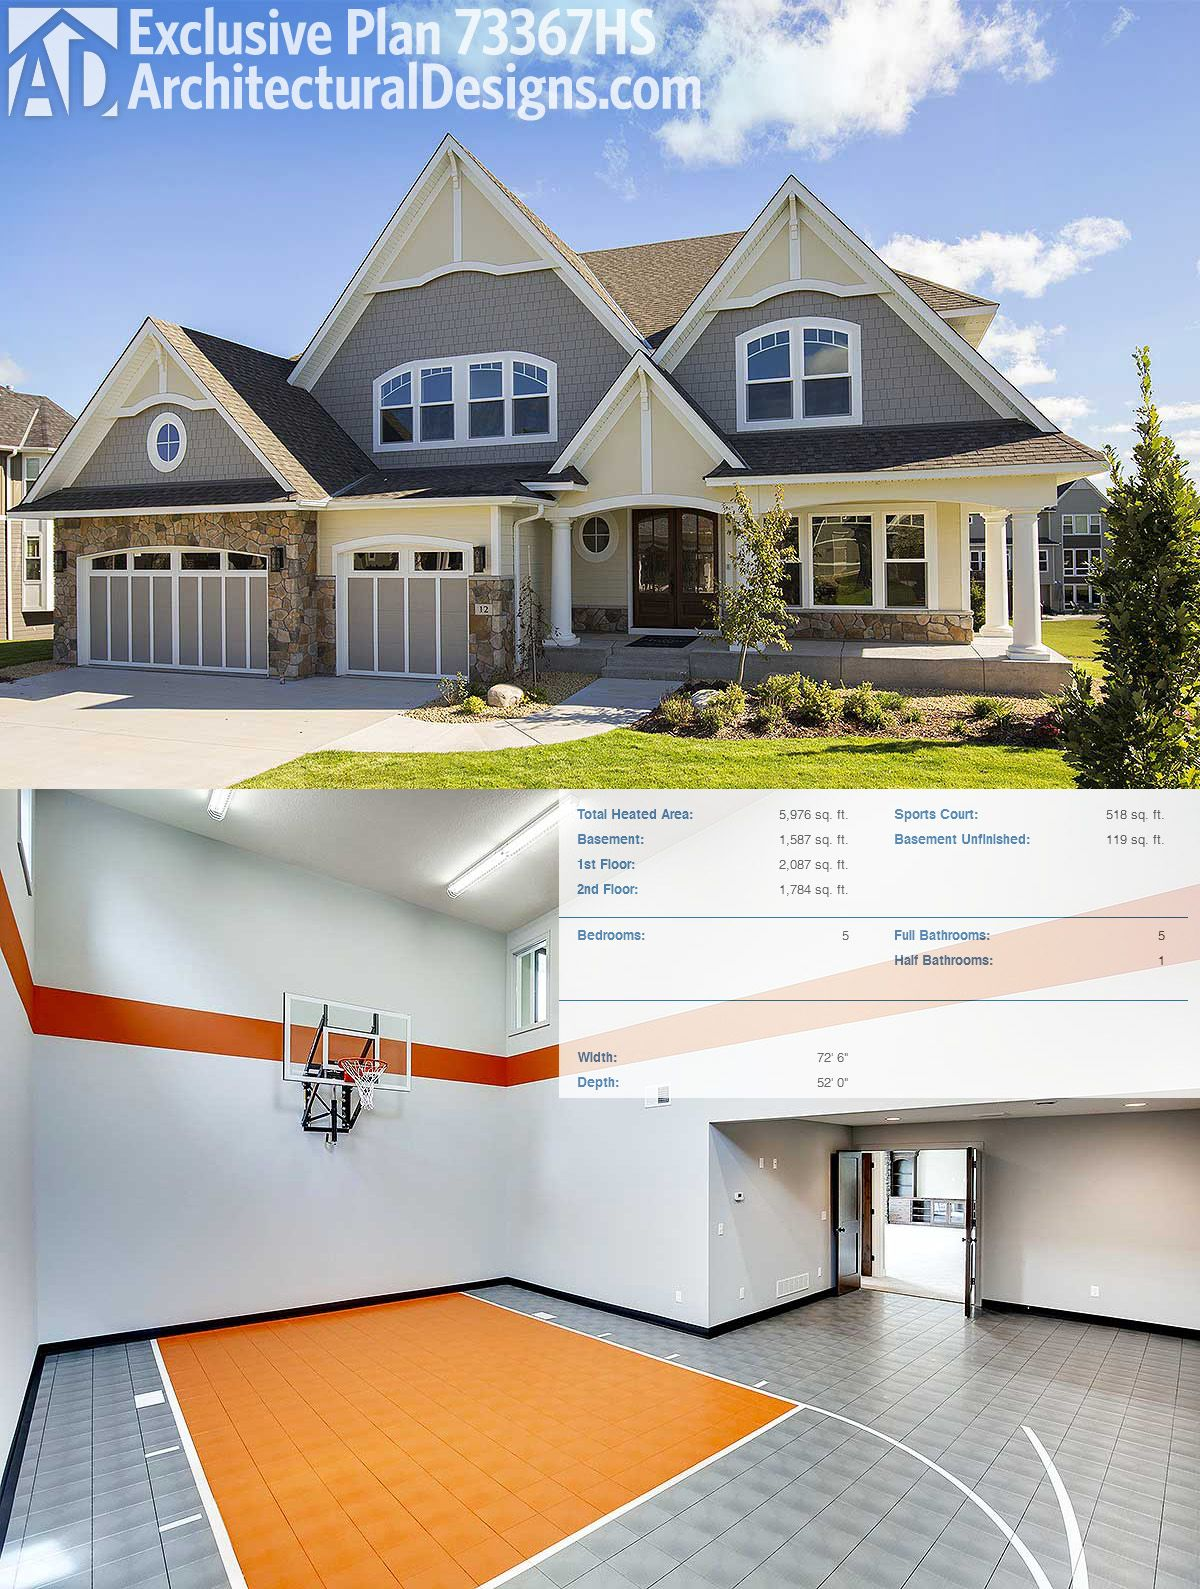 Architectural Designs Exclusive Sports Court House Plan 73367HS Is JUST The  Thing You Need To Perfect